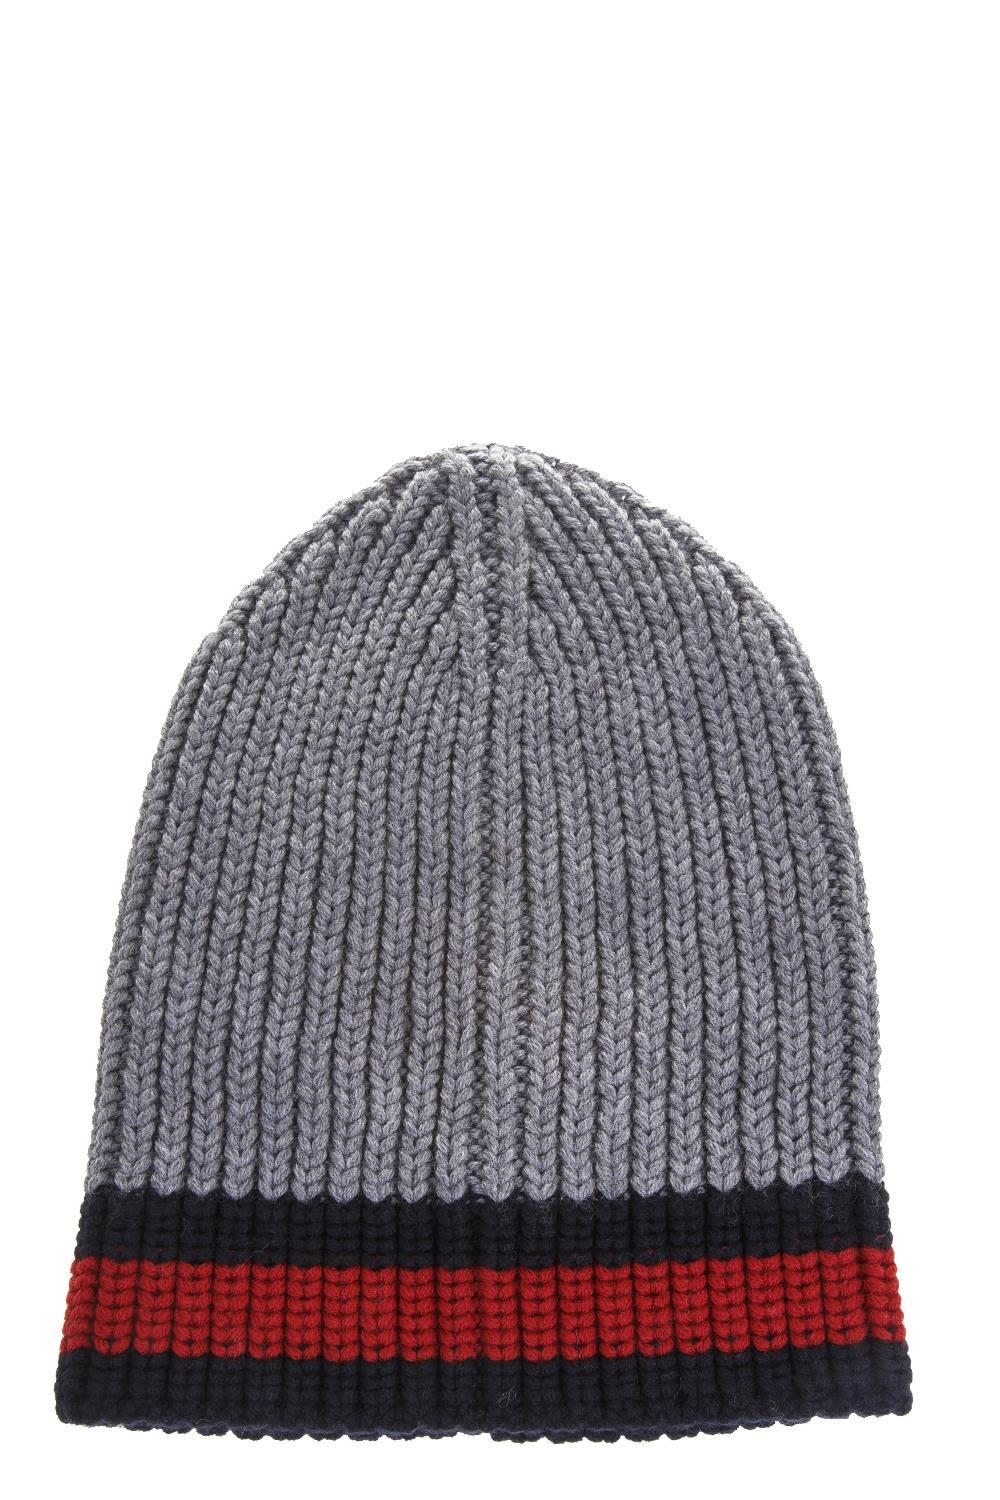 e8ad66efa95 Gucci Web Wool Cable Knit Beanie Hat In Anthracite